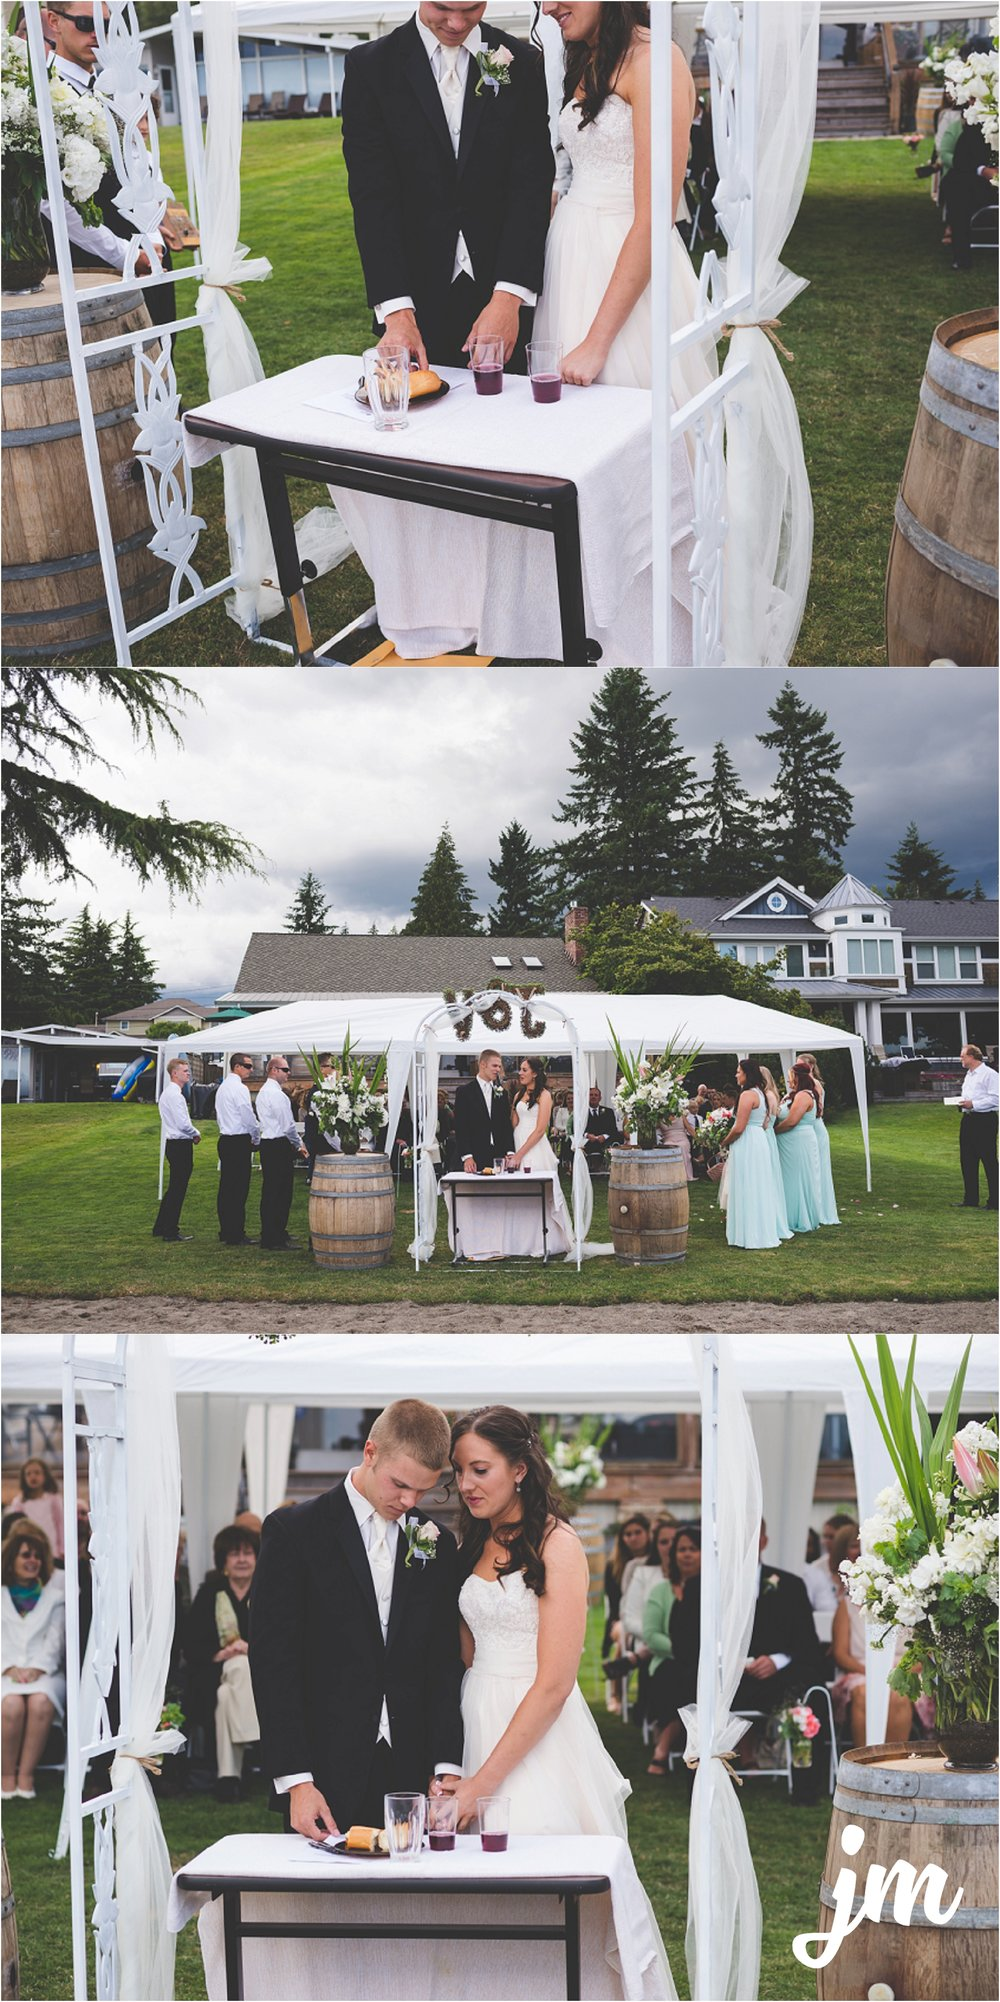 jannicka-mayte-intimate-backyard-lake-wedding-kent-wa-pacific-northwest-wedding-photographer_0049.jpg